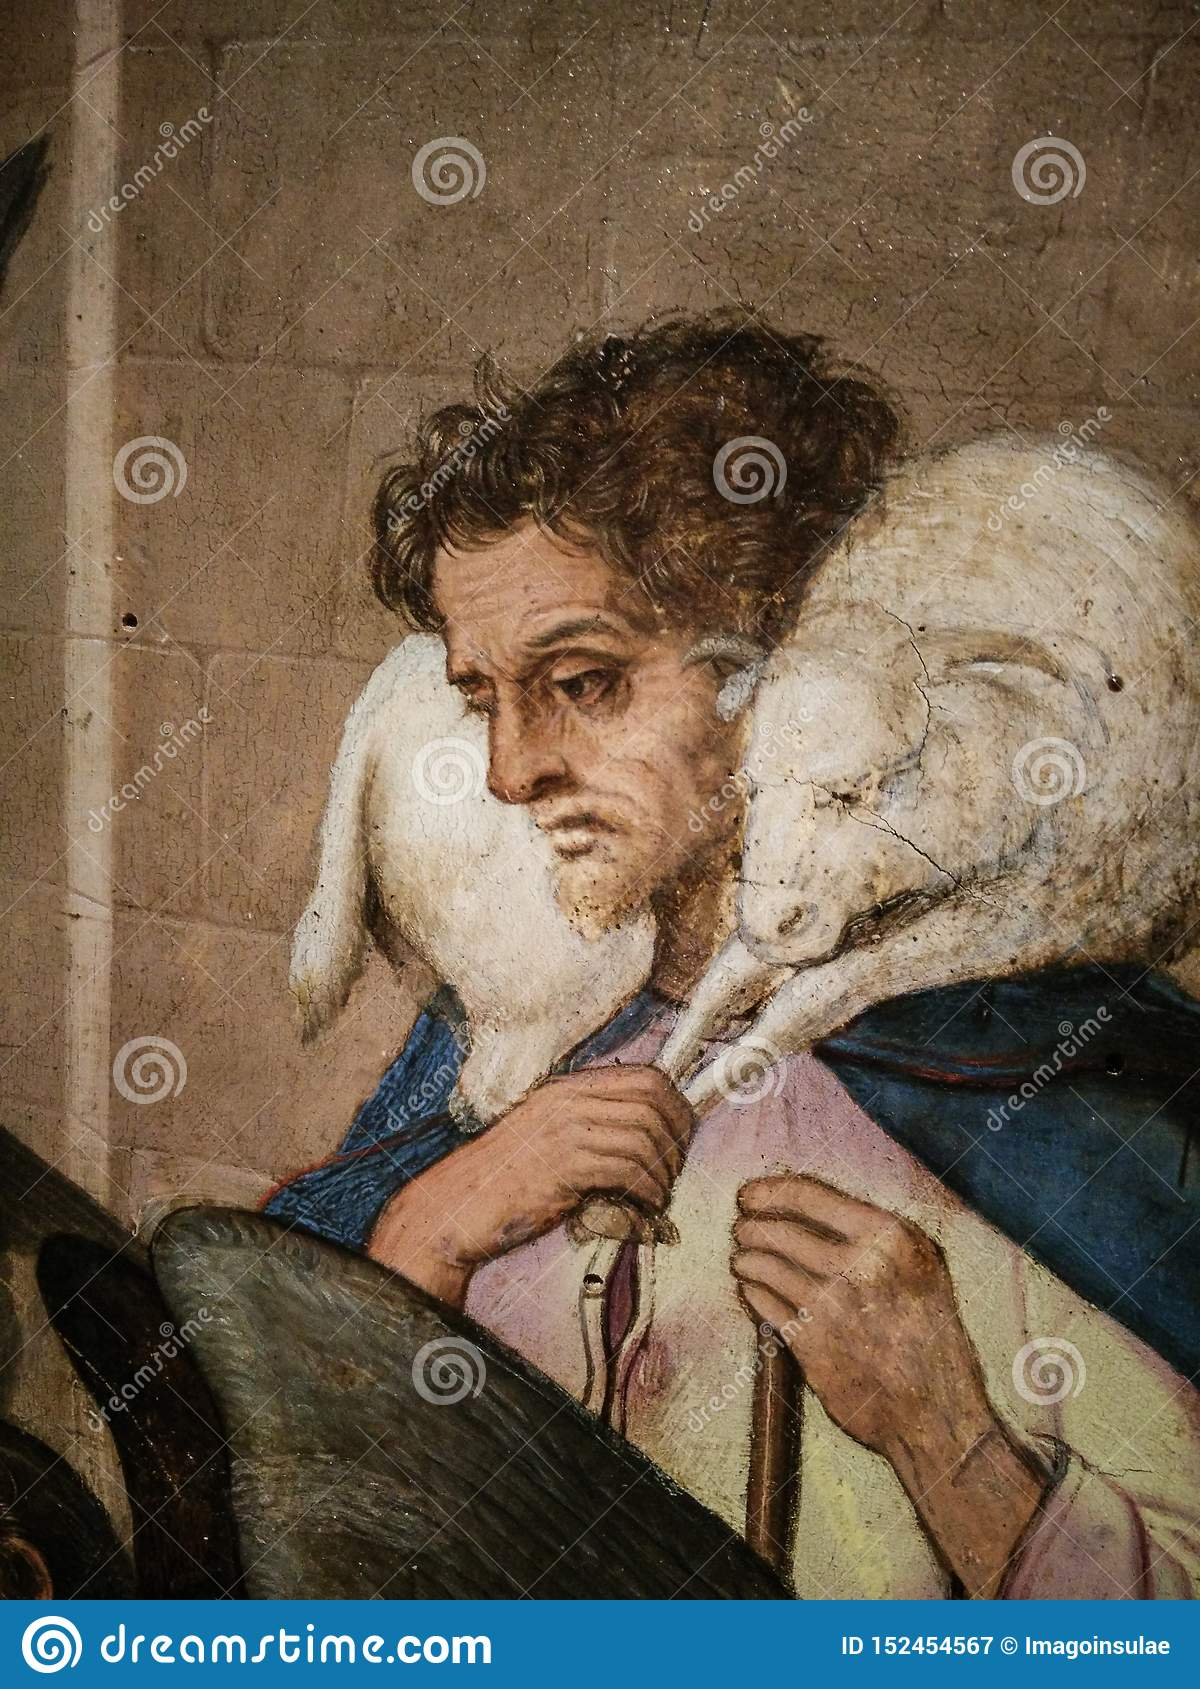 Italy. Artistic heritage. Nativity, work by Master of Bolea. Detail with a shepherd than carries a sheep on shoulders